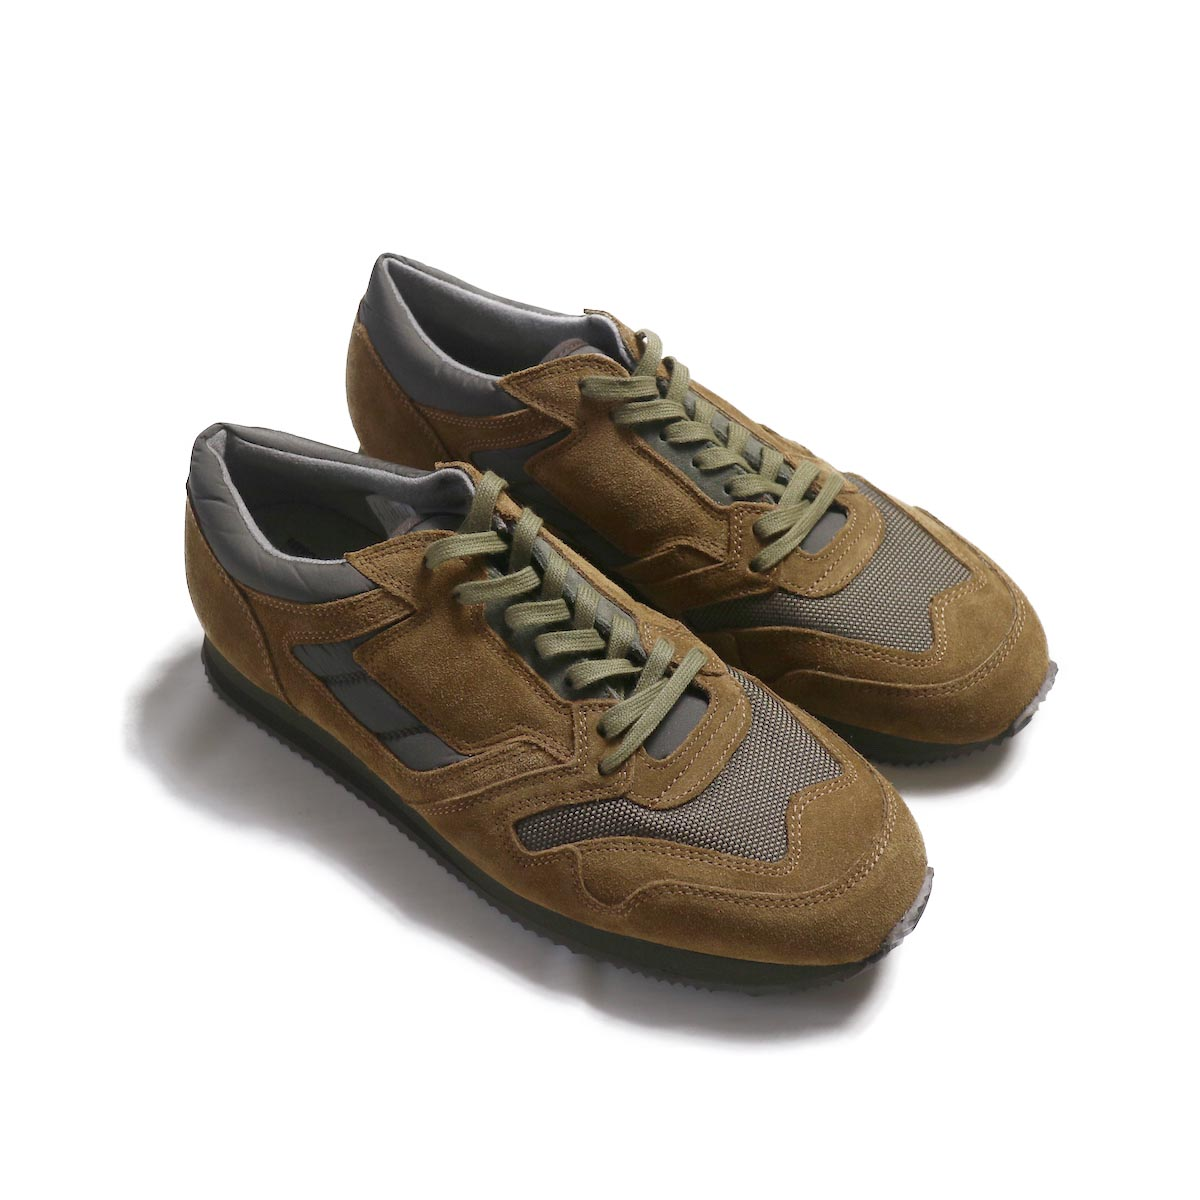 REPRODUCTION OF FOUND / BRITISH MILITARY TRAINER -Tabacco/Olive